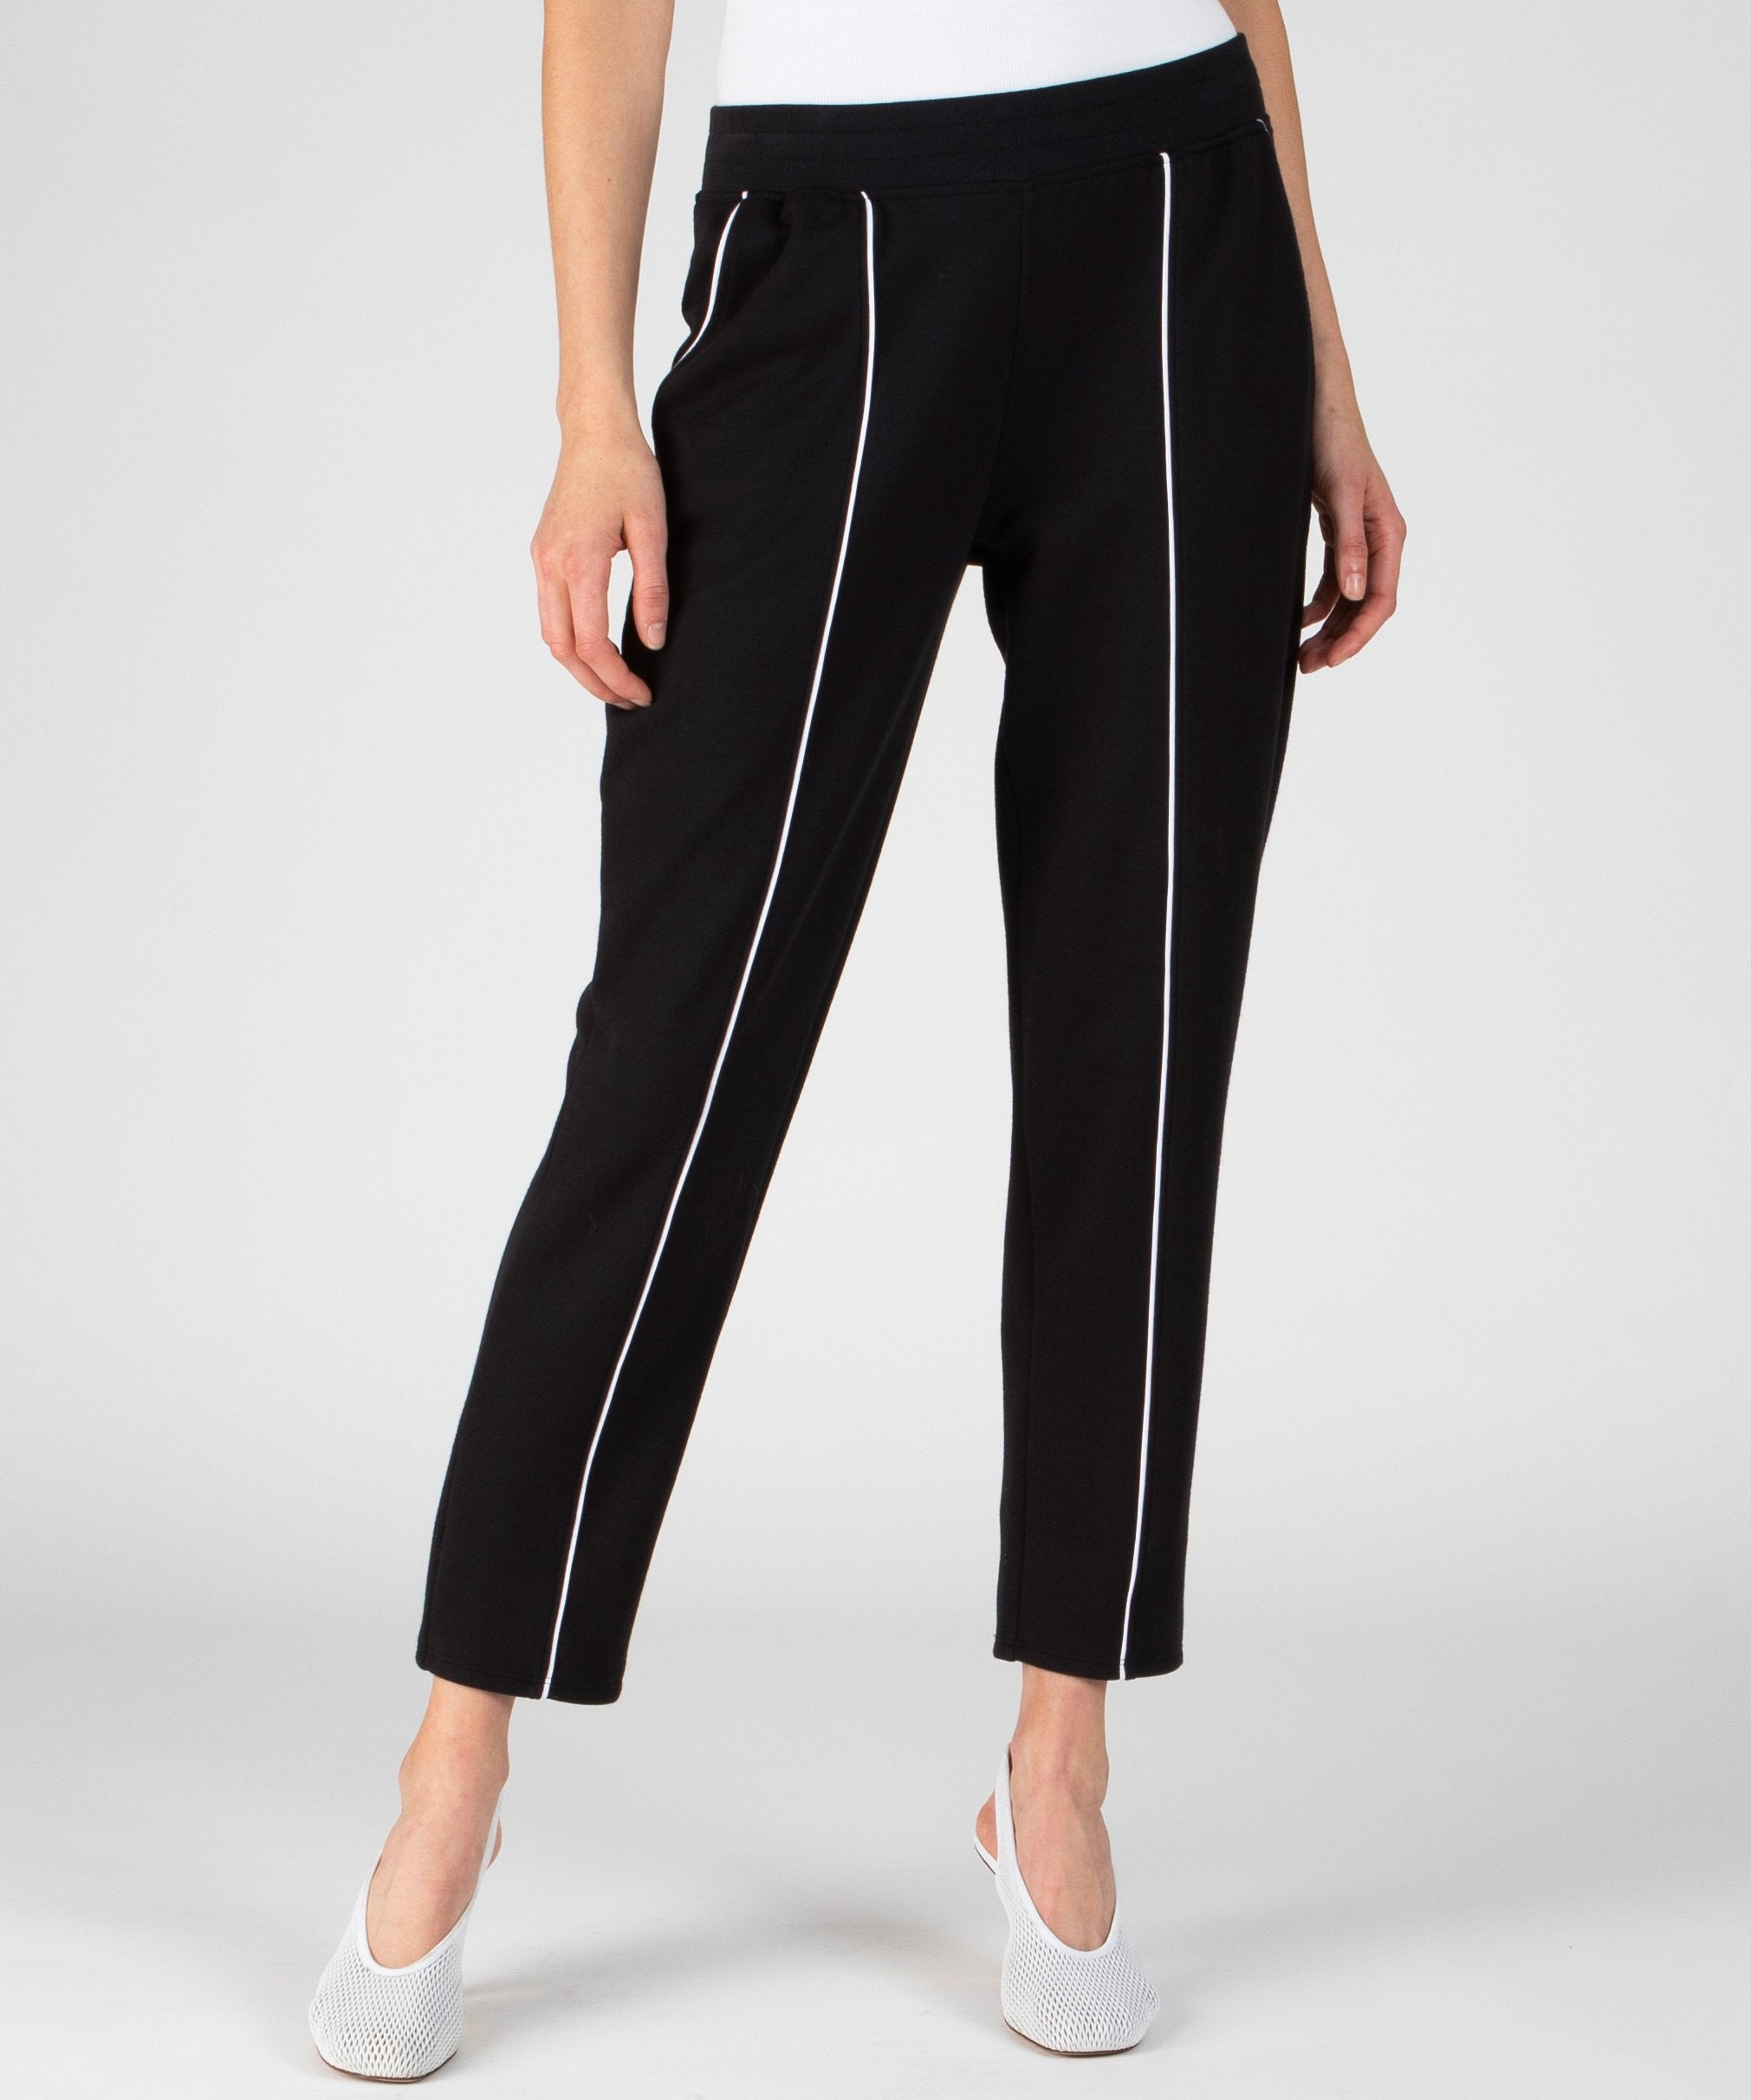 Black French Terry Piped Pull-On Pants - Women's Luxe Loungewear by ATM Anthony Thomas Melillo